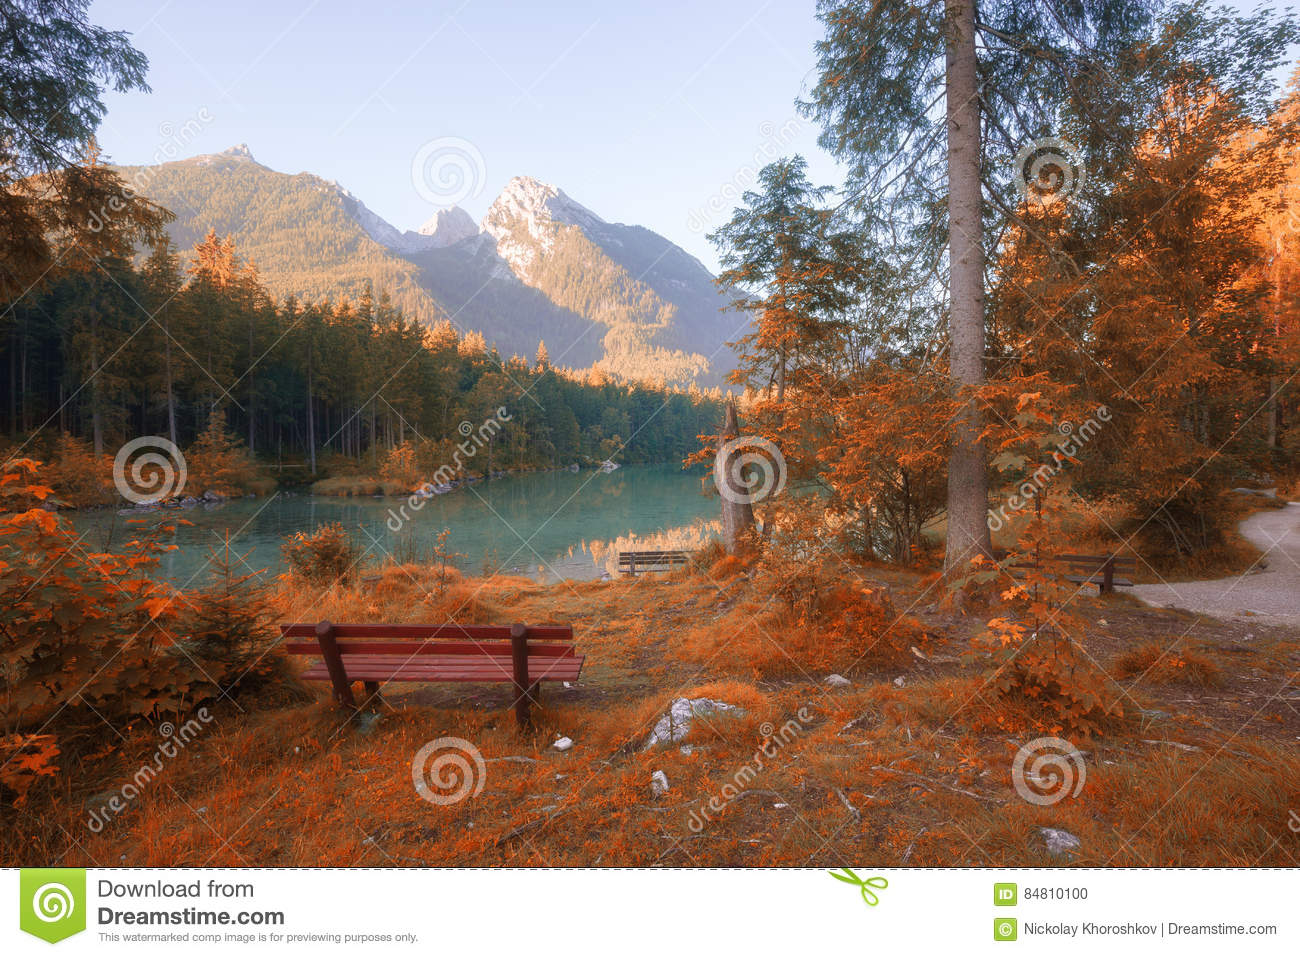 Download Autumn Colors Mountain Lake Stock Photo - Image of fall, outdoor: 84810100